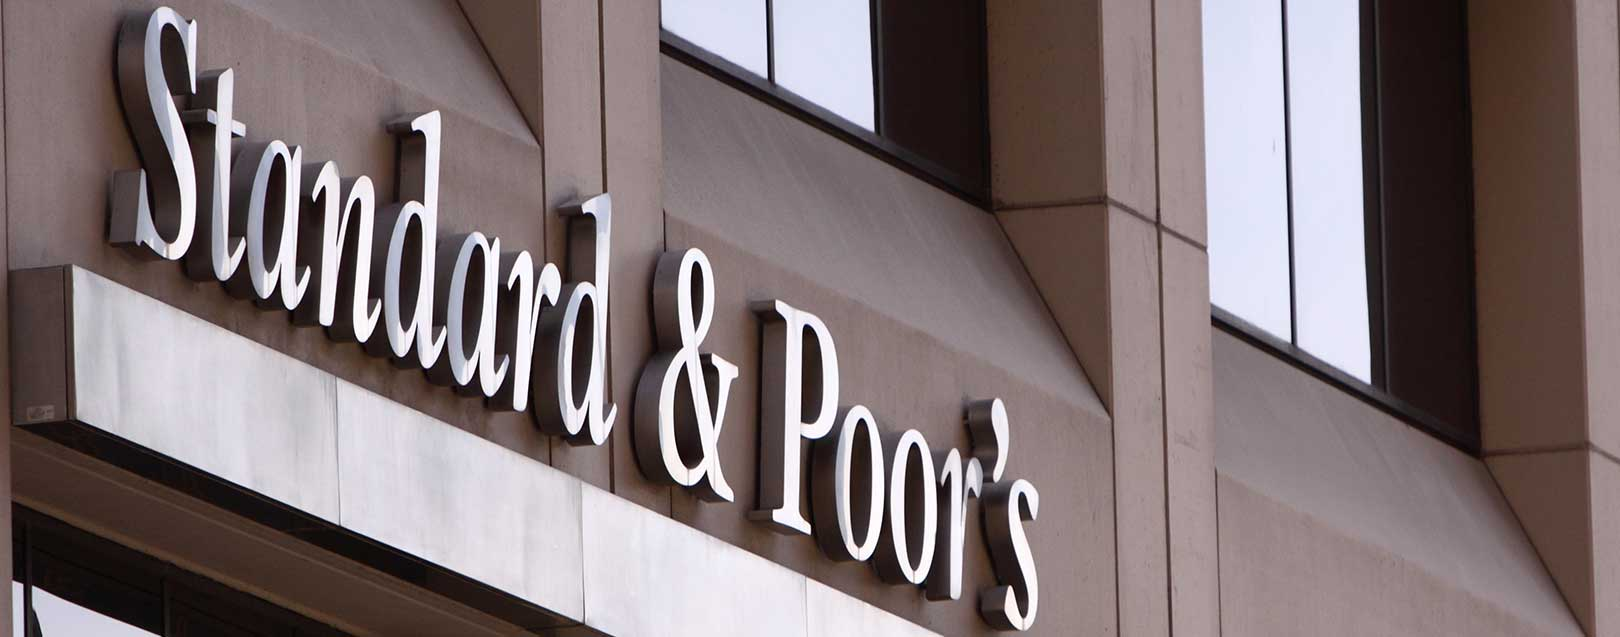 India to grow at 8% over the next few years: S&P